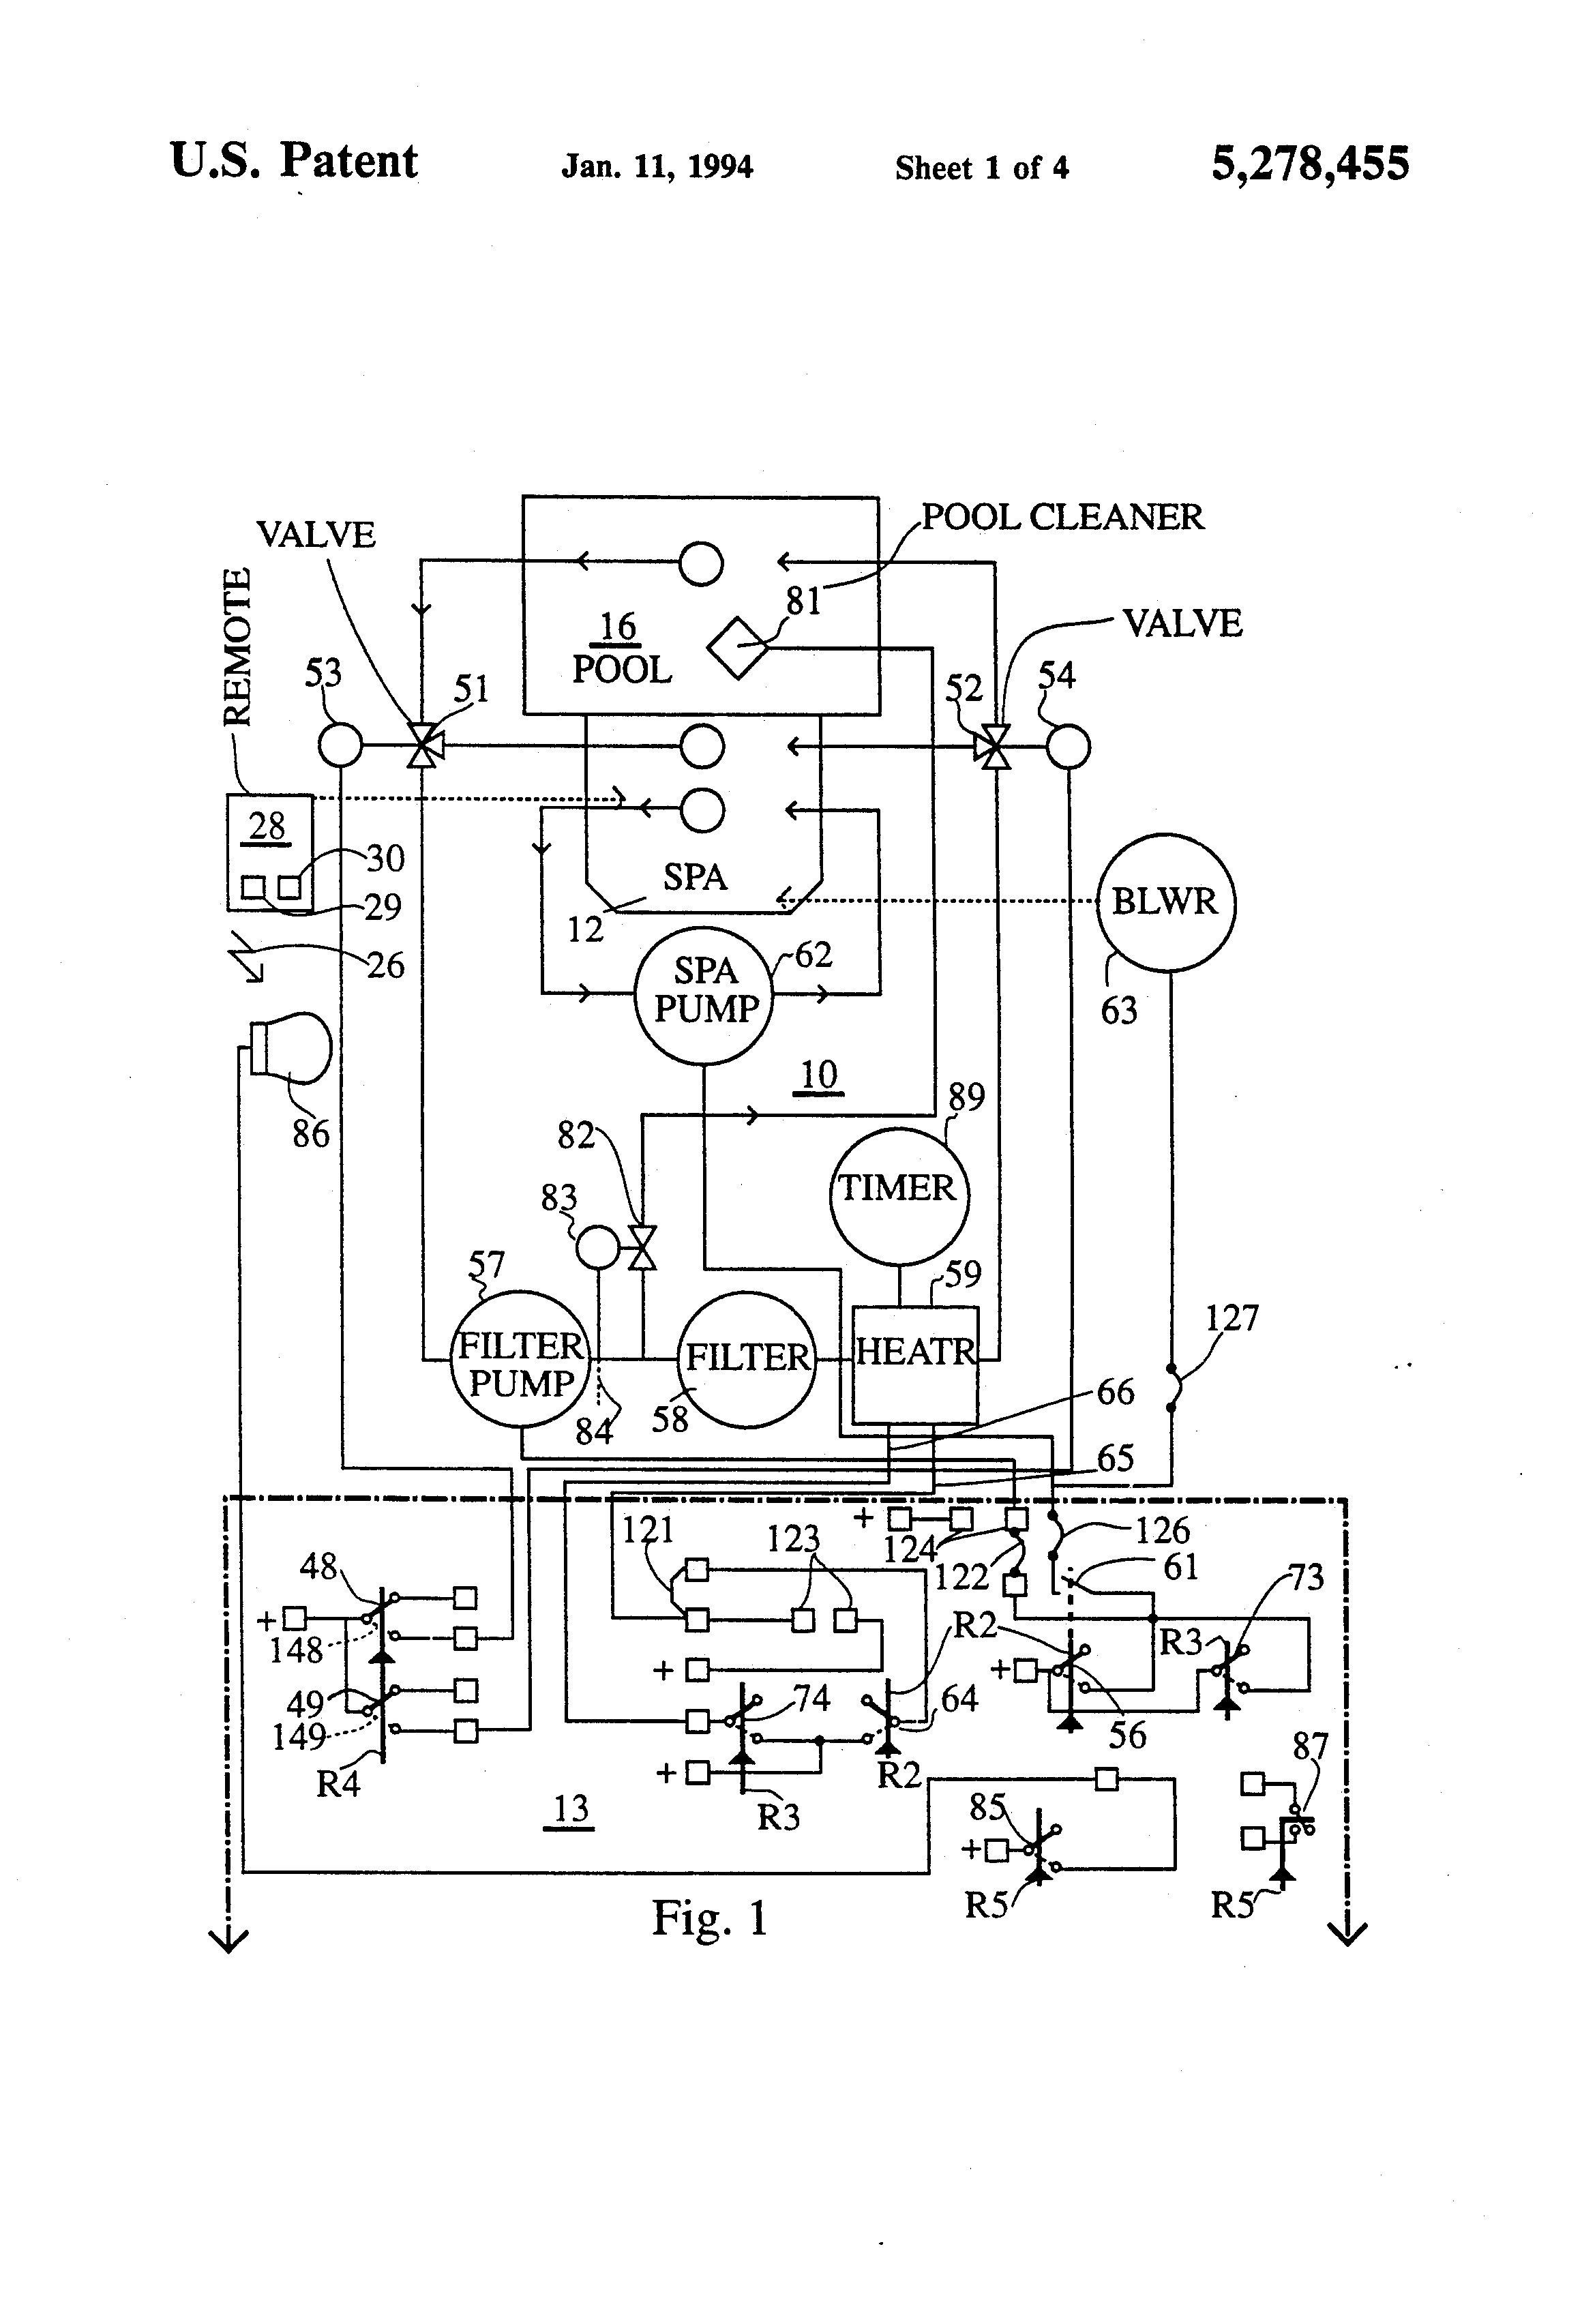 Unique Wiring Diagram Alarm Mobil Avanza #diagramsample ... on mc wiring, trailer wiring, flexible underground conduit wiring, sub panel wiring, motion sensor wiring, circuit wiring, diode wiring, dodge wiring, alternator wiring, a light switch wiring, tstat wiring, air conditioner compressor wiring, refrigerator wiring, safety damaged wiring, ceiling fan speed control wiring, electric guitar wiring,